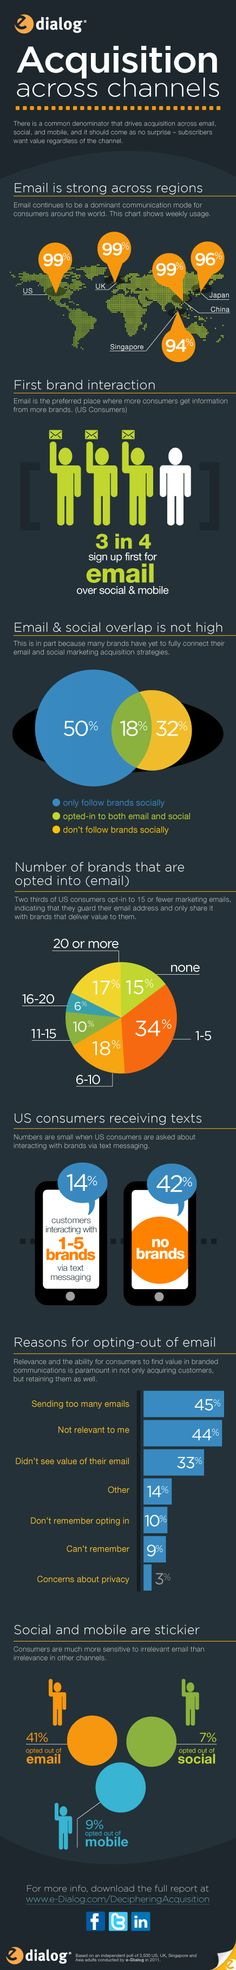 Deciphering Acquisition across channels. email, social, mobile #infographic @eDialog